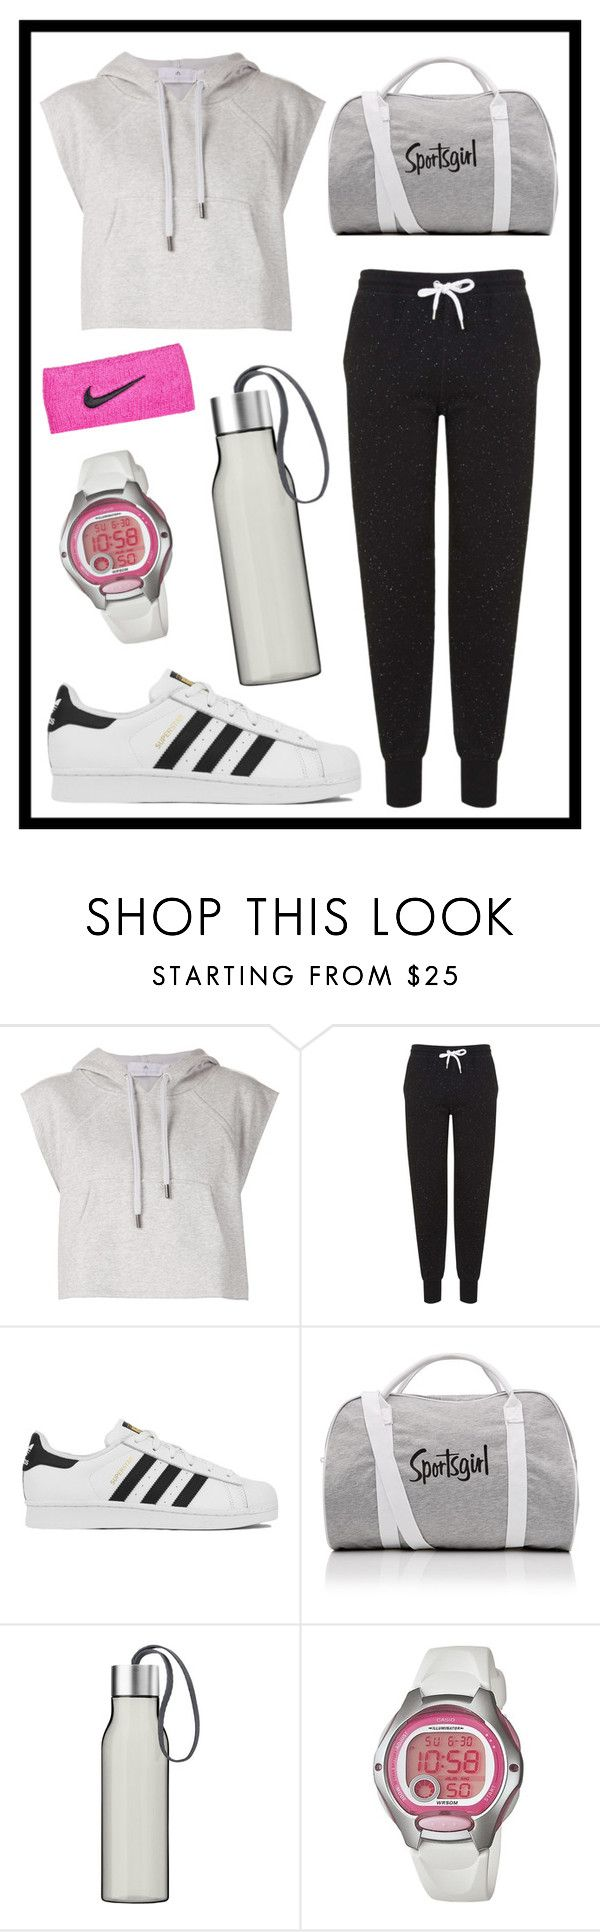 """""""#384 sportsgirl"""" by xjet1998x ❤ liked on Polyvore featuring adidas, Topshop, Eva Solo, Casio and NIKE"""